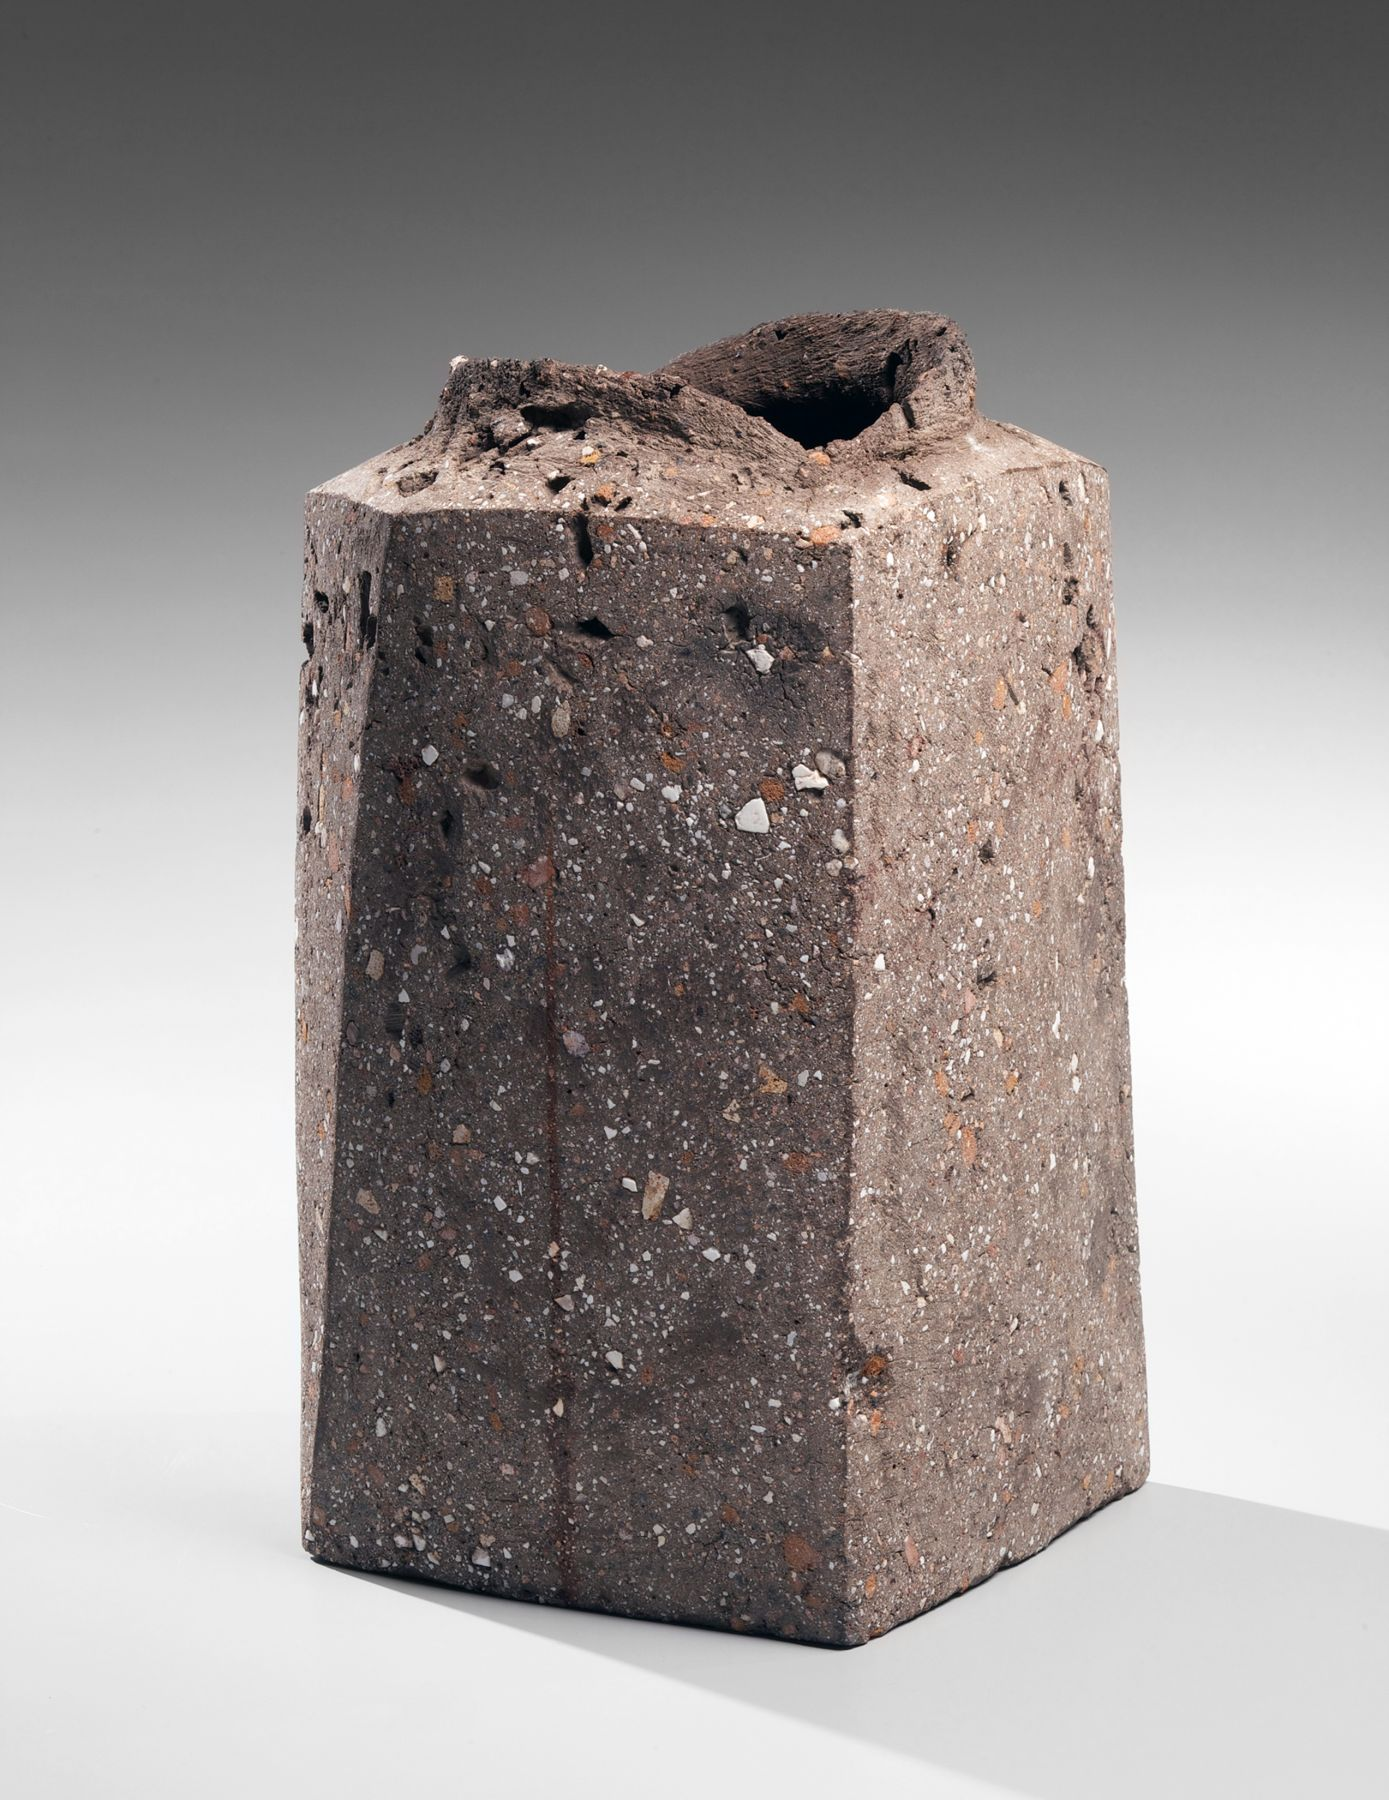 Itō Sekisui V (b. 1941), Standing four-sided rough grey vessel with raised torn mouth